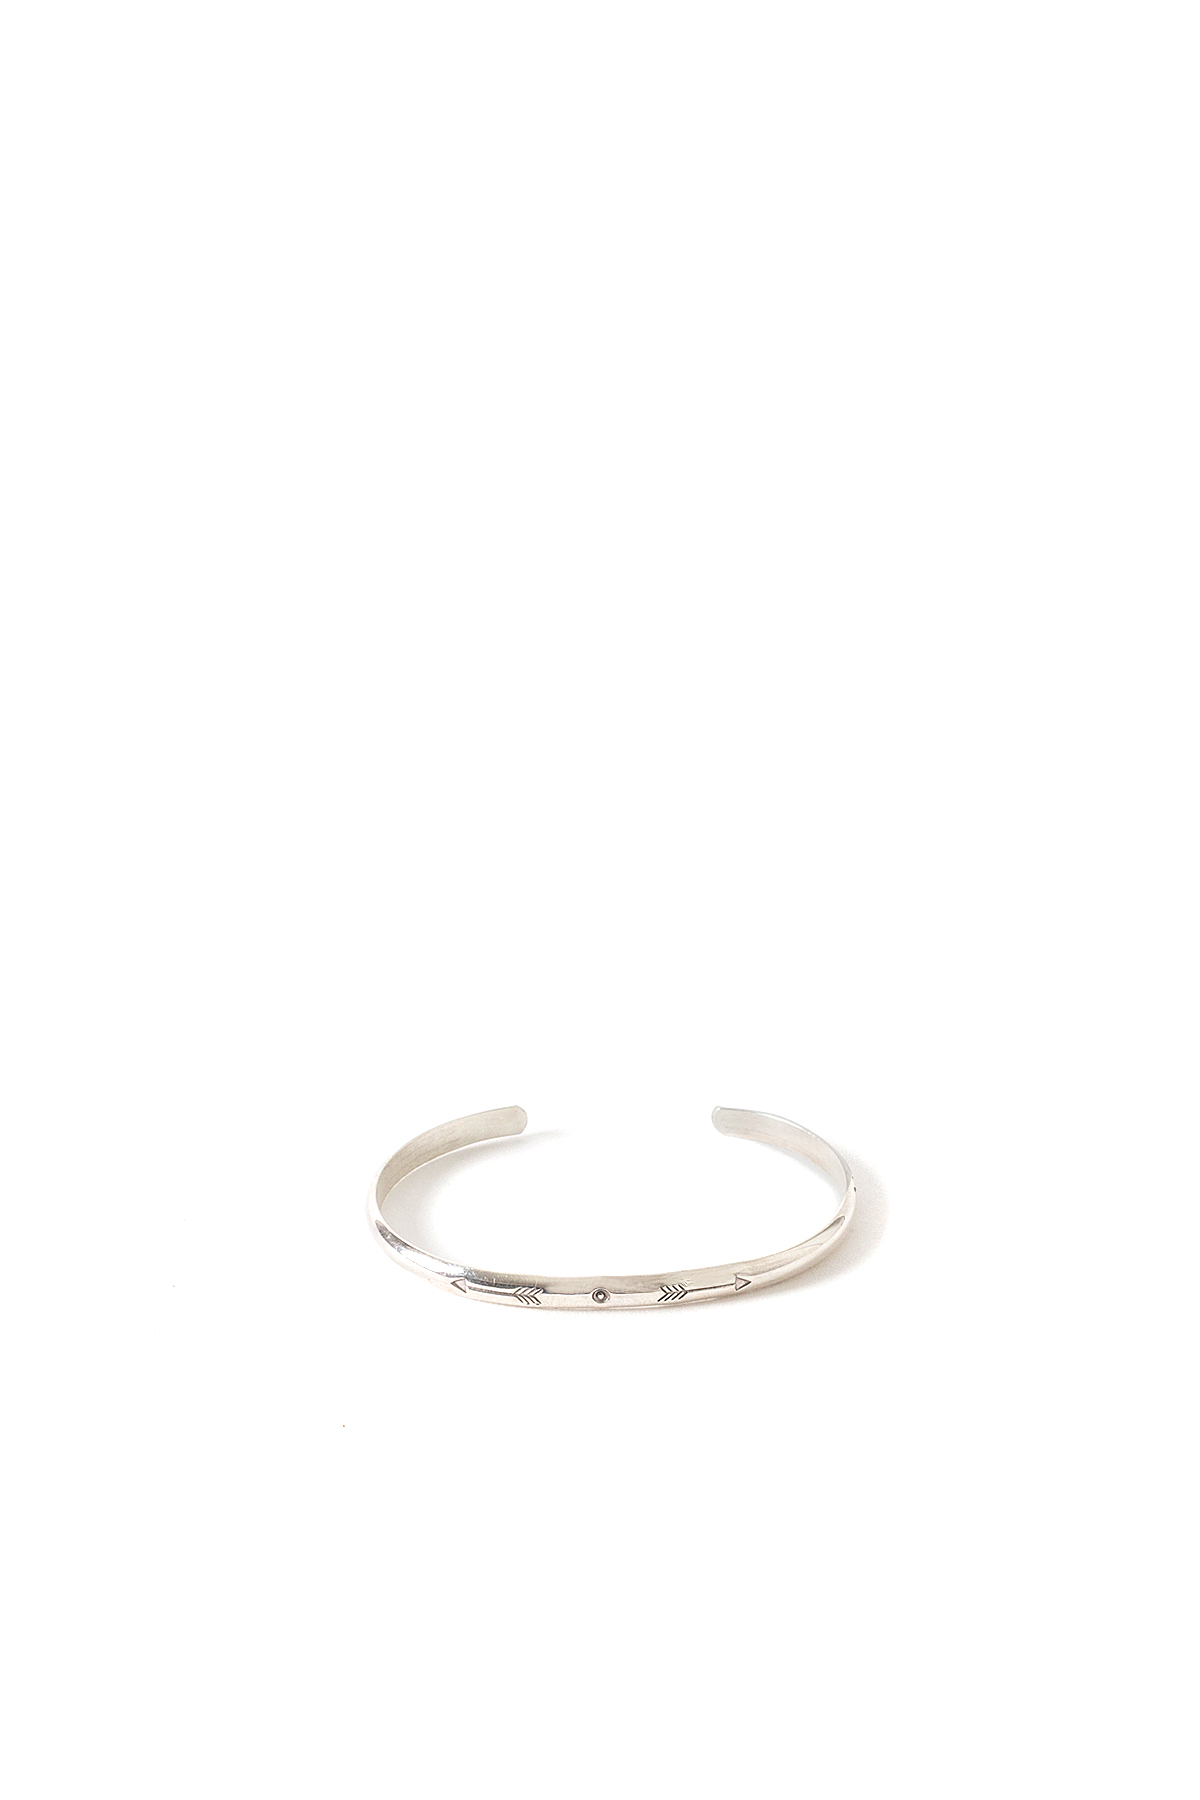 North Works : 900 Silver Arrow Stamp Bangle